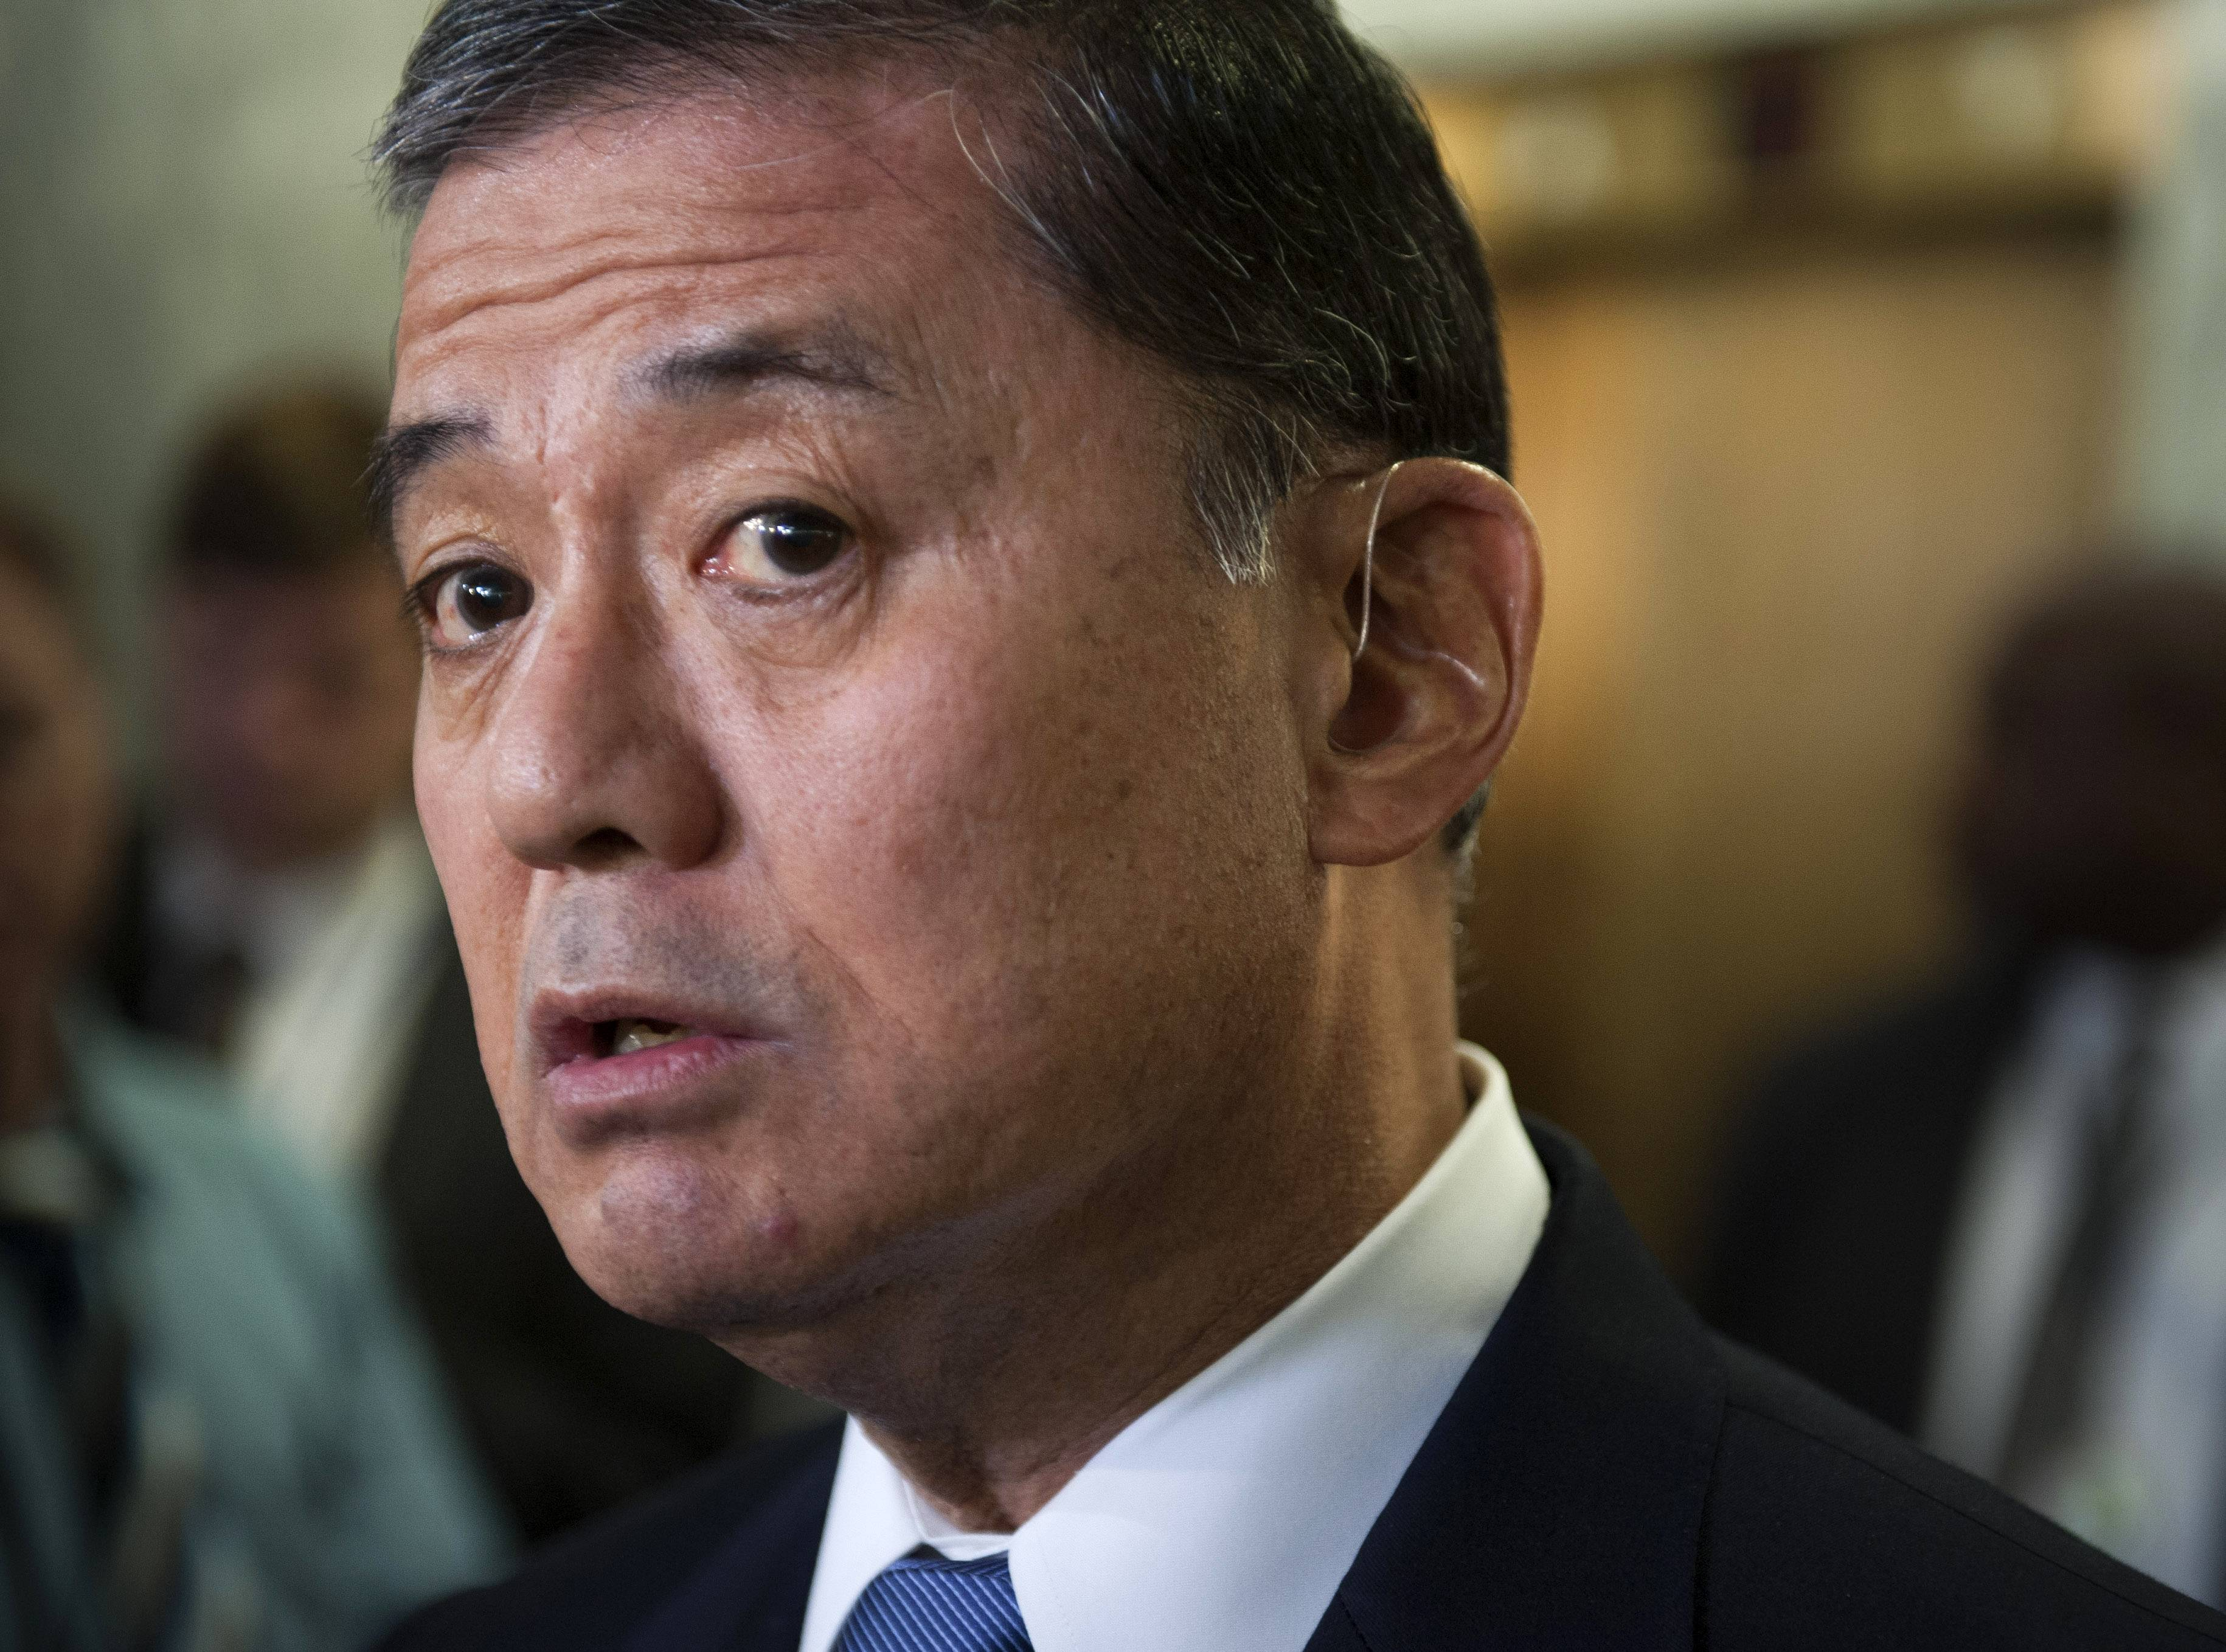 Veterans Affairs Secretary Eric Shinseki is under pressure to correct problems within his agency, while some critics have called on him to resign.